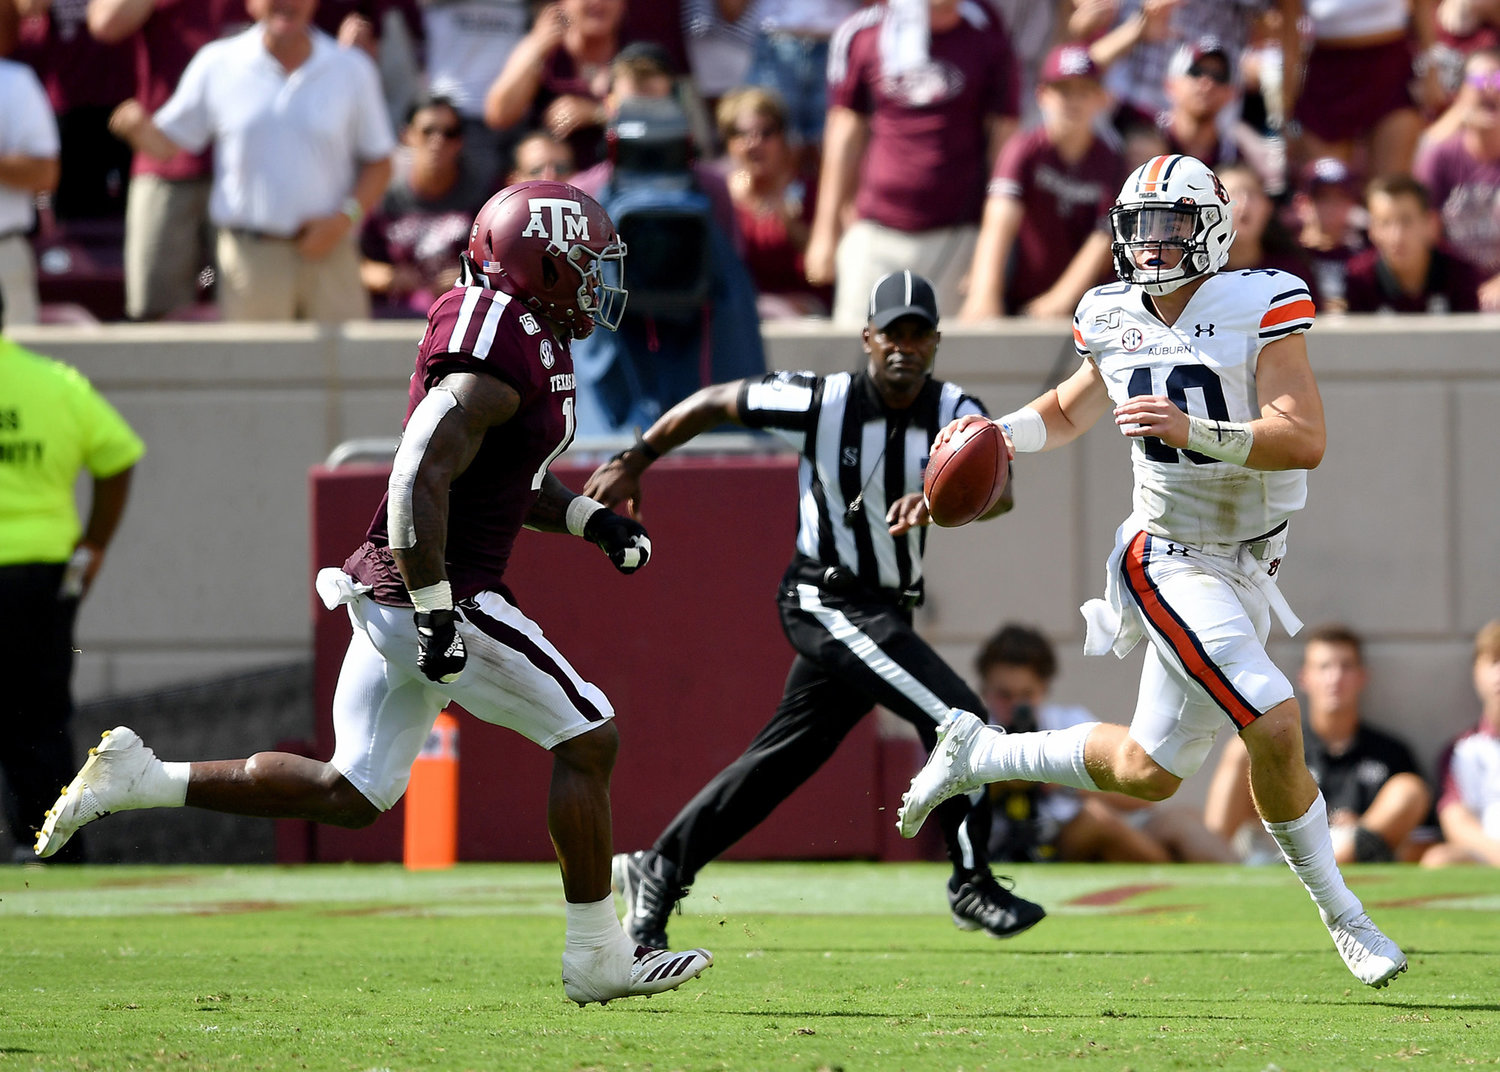 Auburn Tigers quarterback Bo Nix (10) looks for a receiver while under pressure during the first half of an NCAA football game against the Texas A&M Aggies Saturday, Sept. 21, 2019, at Kyle Field in College Station Texas. Auburn wins 28-20.